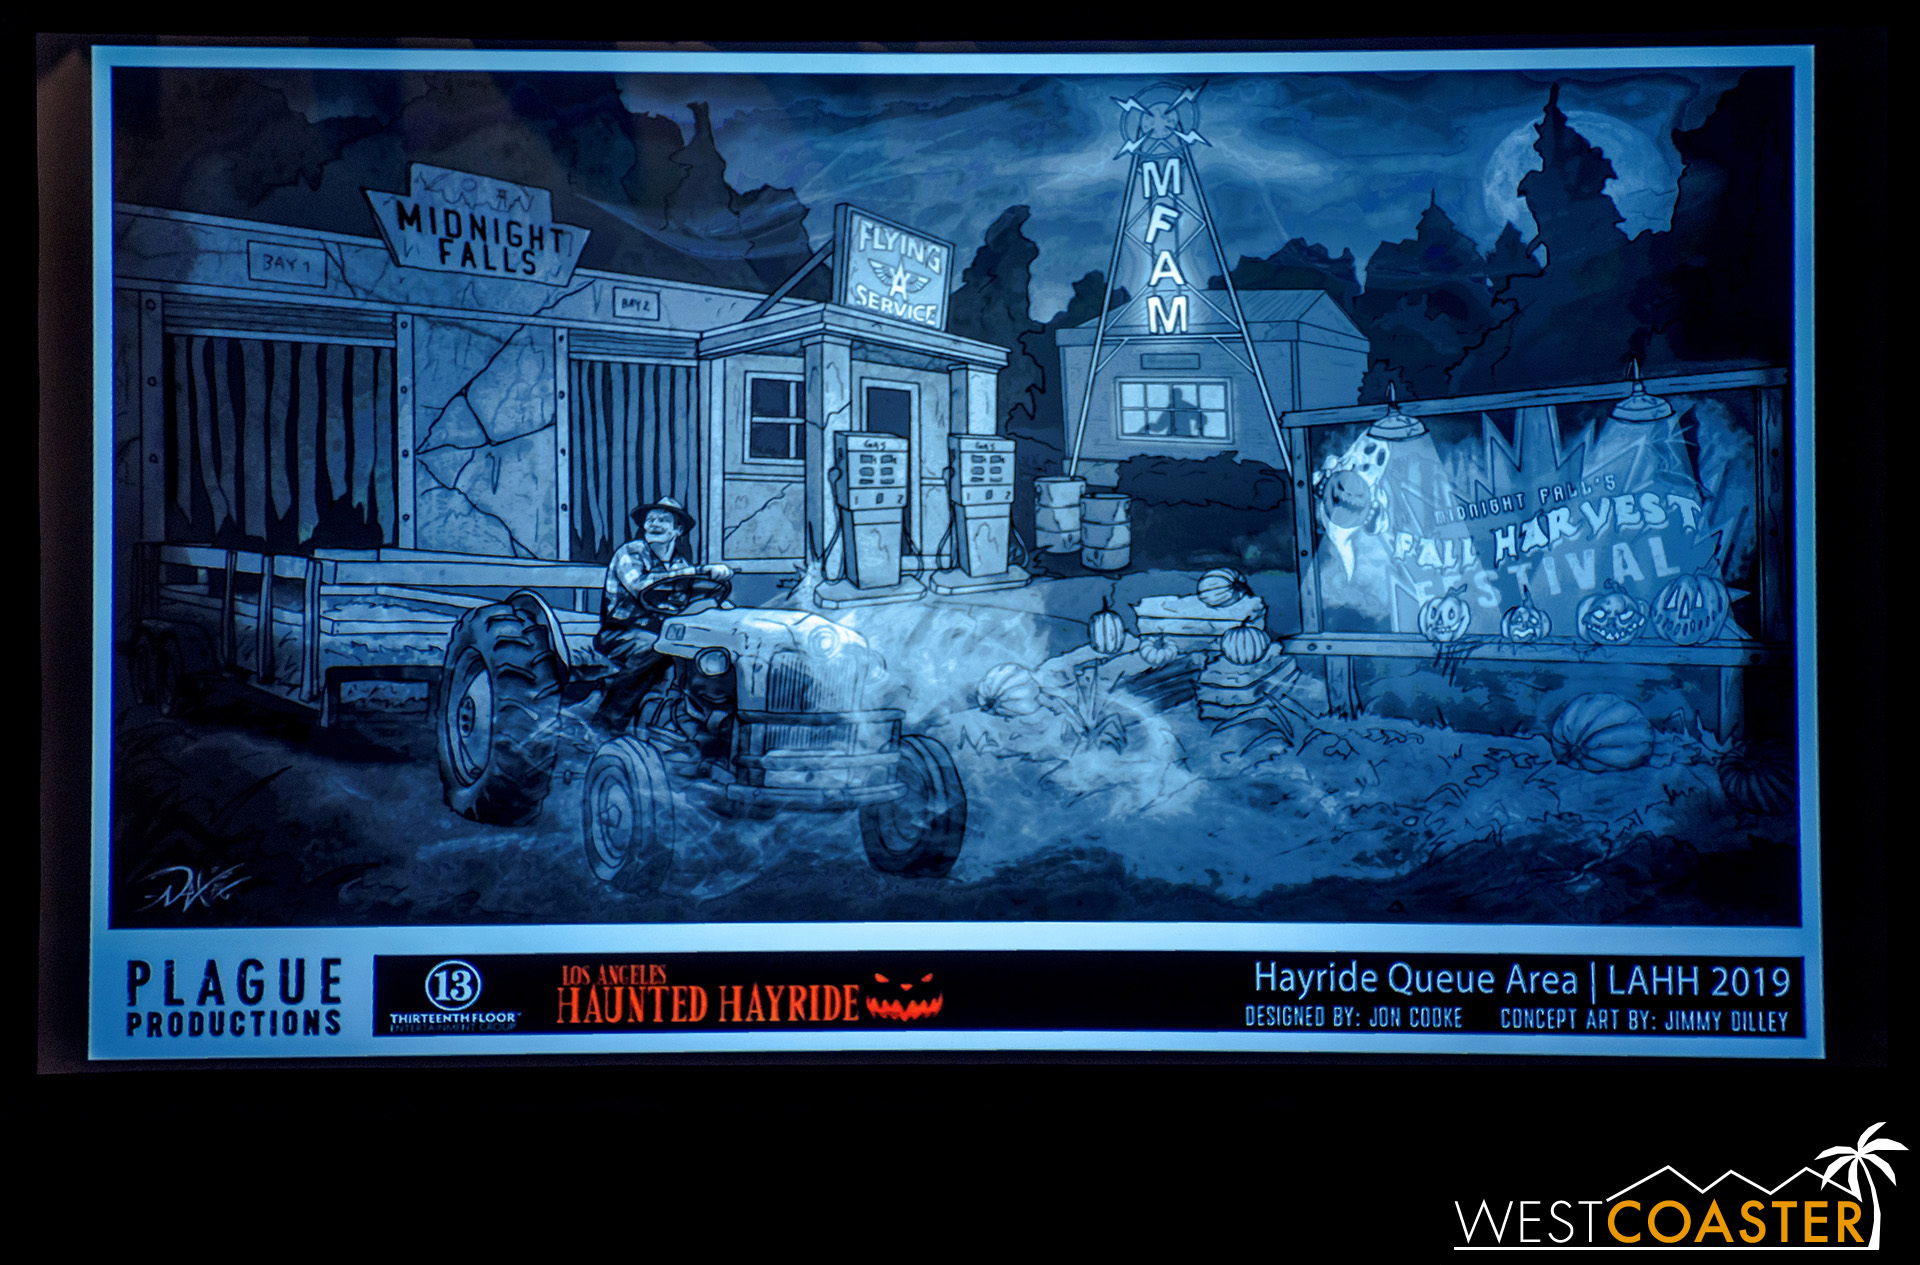 Some of the concept art for this year's L.A. Haunted Hayride.